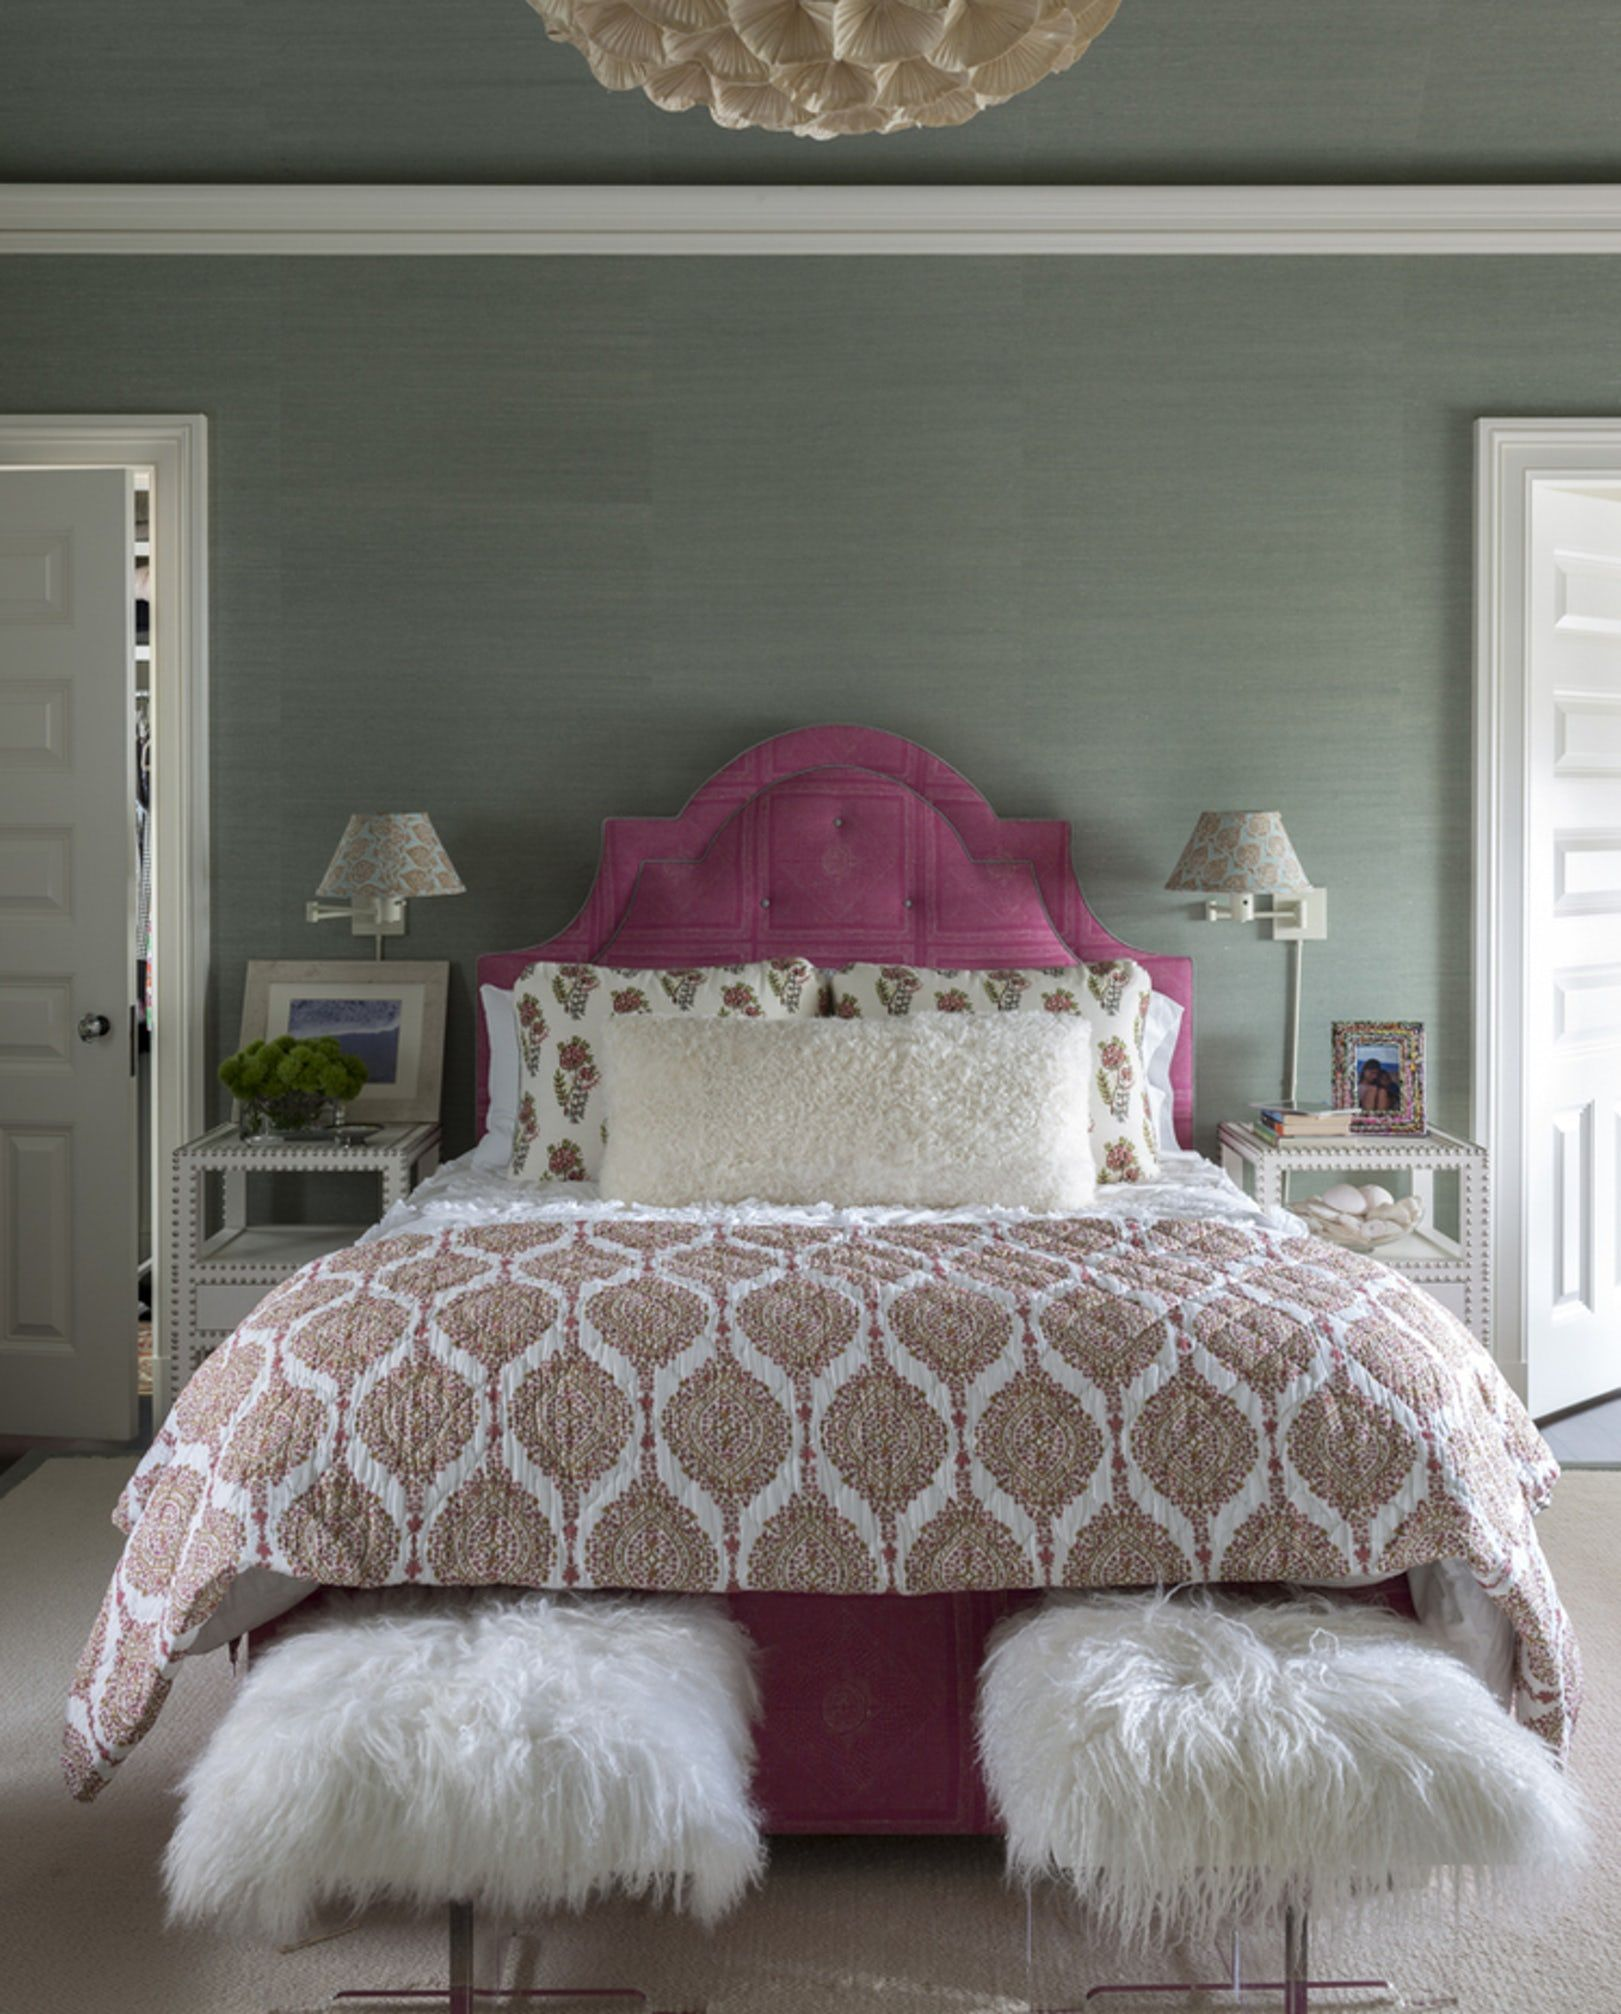 Marvelous Girls Bedrooms. Design By Lee Ann Thornton Interiors